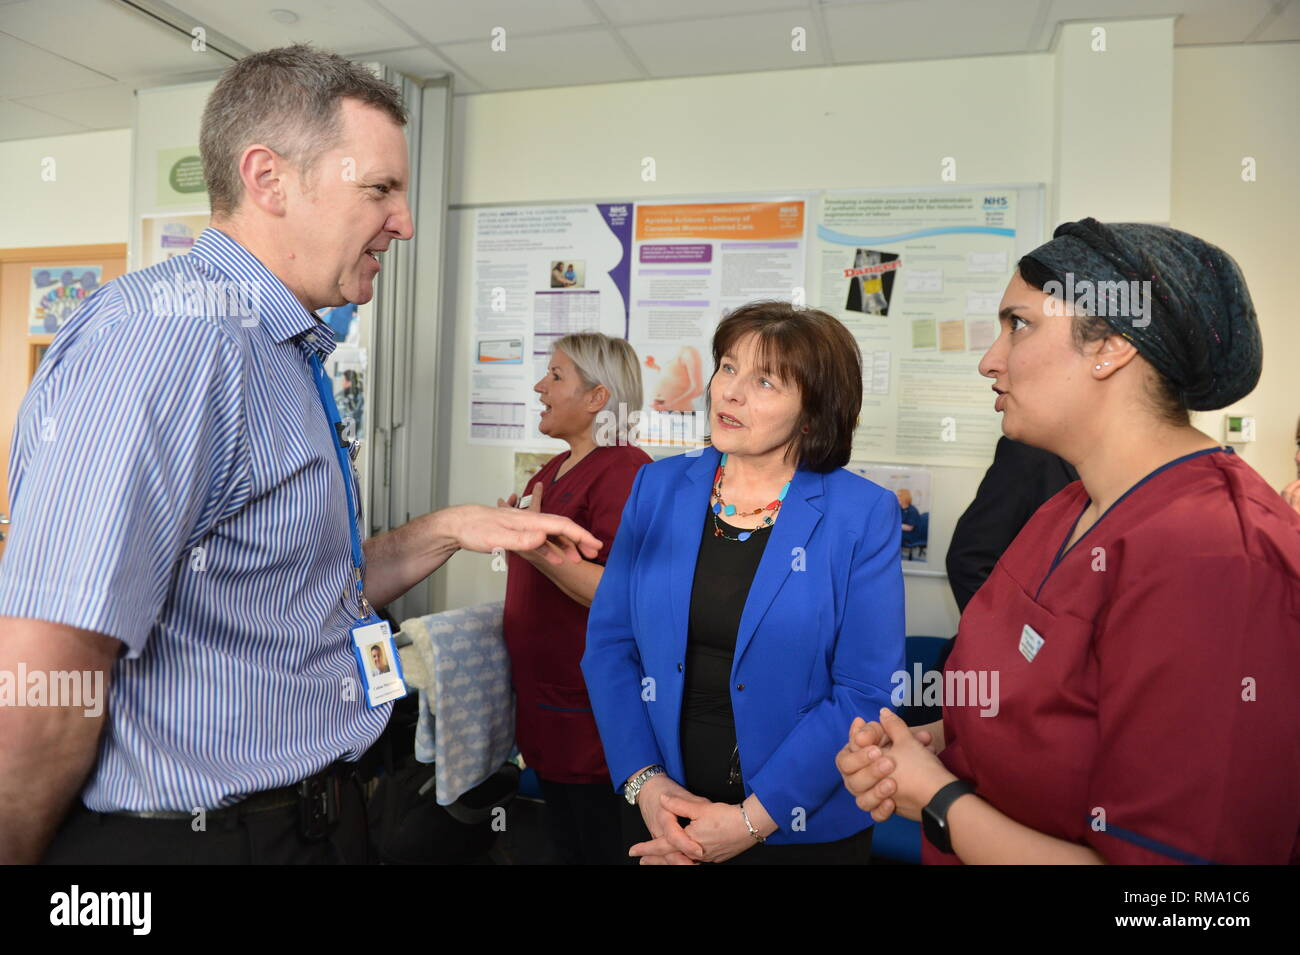 Kilmarnock, UK. 14 February 2019.(L-R) (L-R) Calum Morrison - Consultant Paedrician, Associate Medical Director Women Children & Diagnostics NHS Ayrshire and Arran; Health Secretary - Jeane Freeman; Attica Wheeler - Head of Midwifery Associate Nurse Director, NHS Ayrshire and Arran. Transforming maternity and neonatal care across Scotland Cabinet Secretary for Health Jeane Freemanl visits Crosshouse Hospital in NHS Ayrshire and Arran to announce a £12 million investment which will ensure mums, babies and other family members are all supported from pregnancy to birth and after. This includes - Stock Image